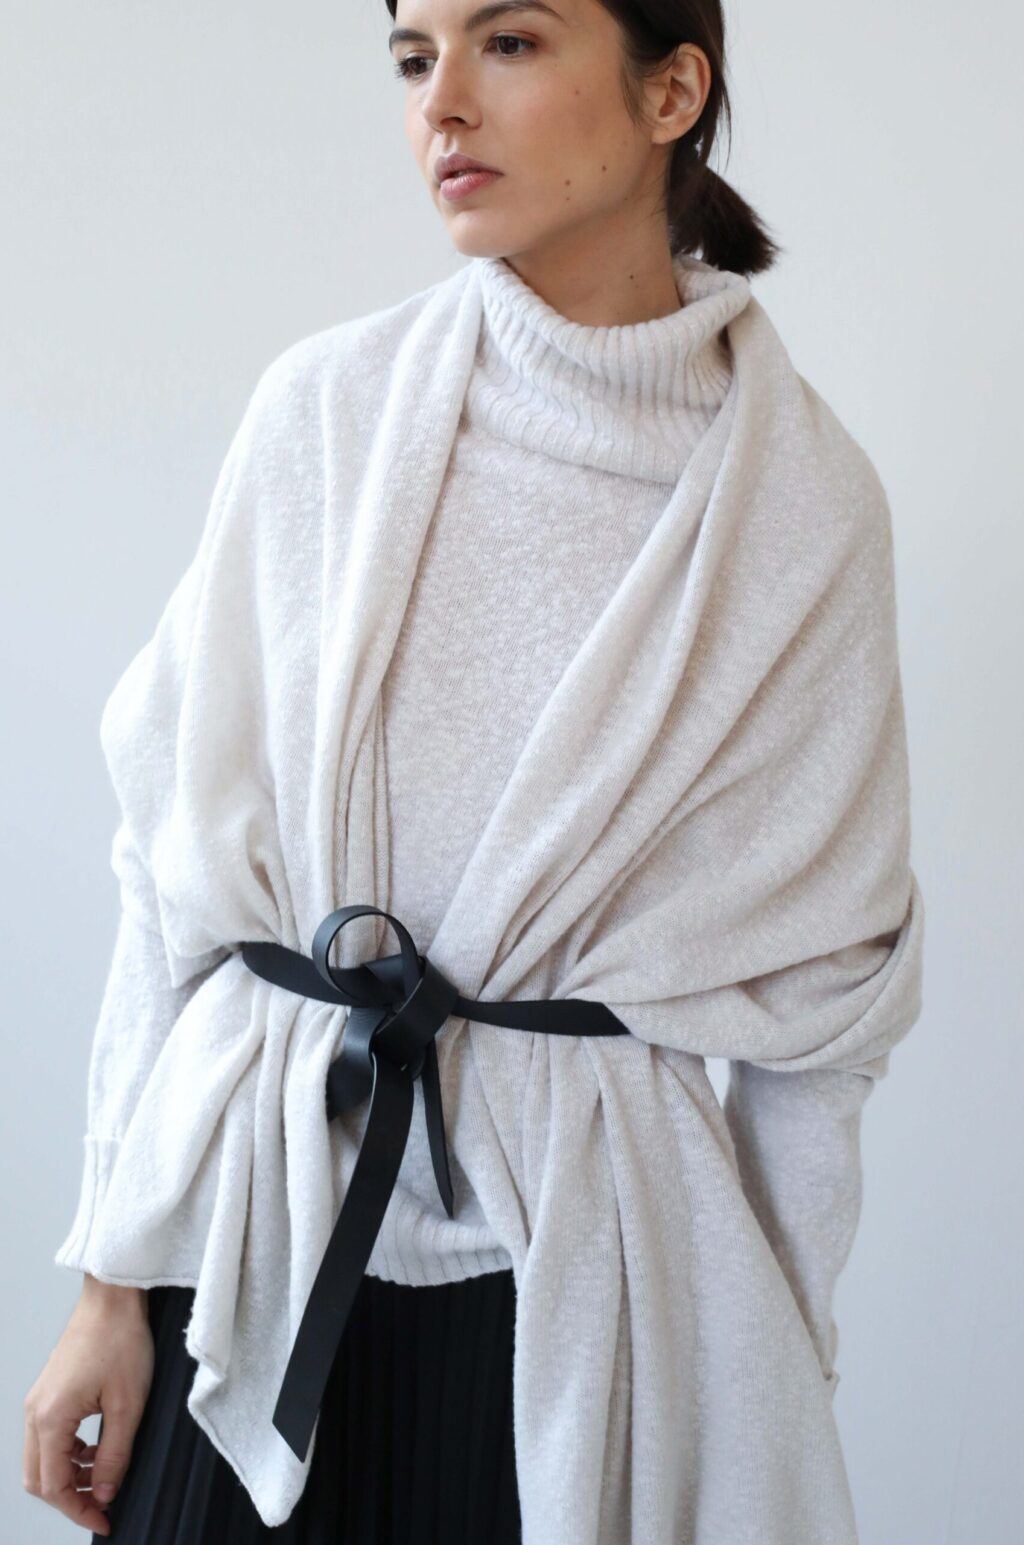 White cashmere scarf with black belt